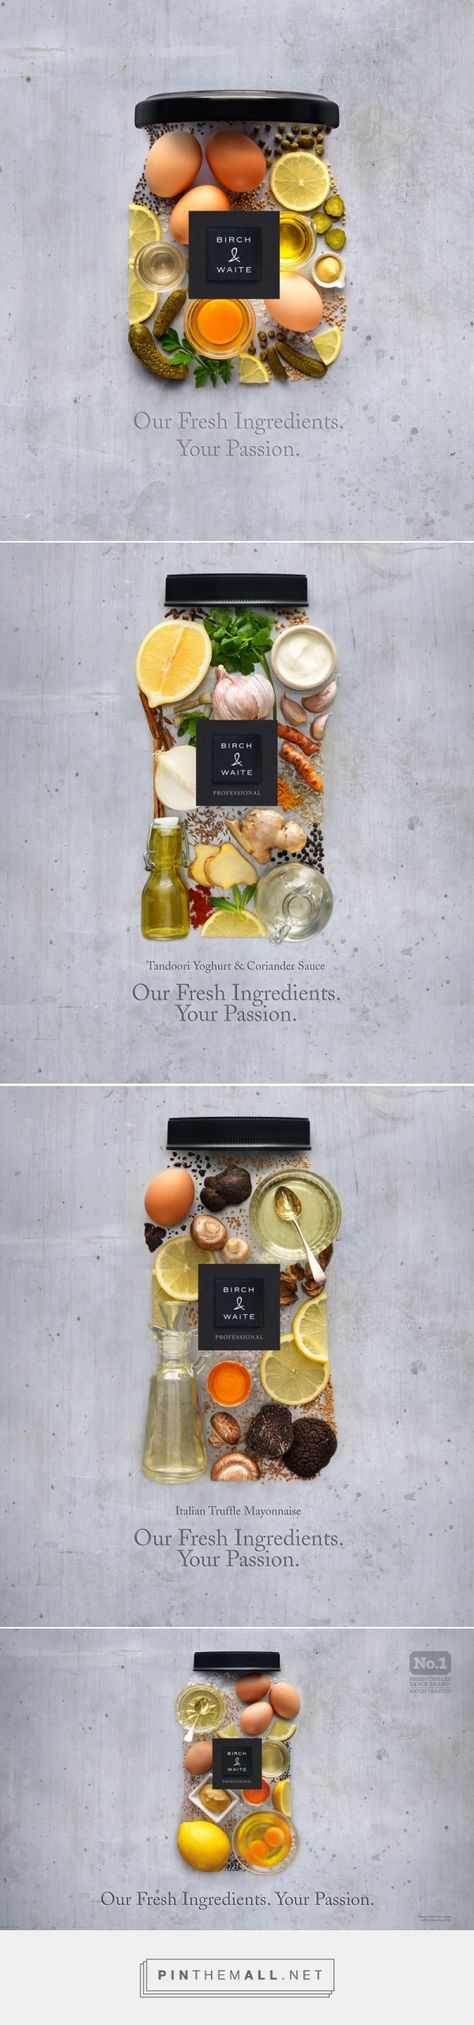 How to Creatively Package Sauces by Jade Moyano via Trendland curated by Packaging Diva PD. One of the most creative packaging designs and advertising campaigns I've seen lately.